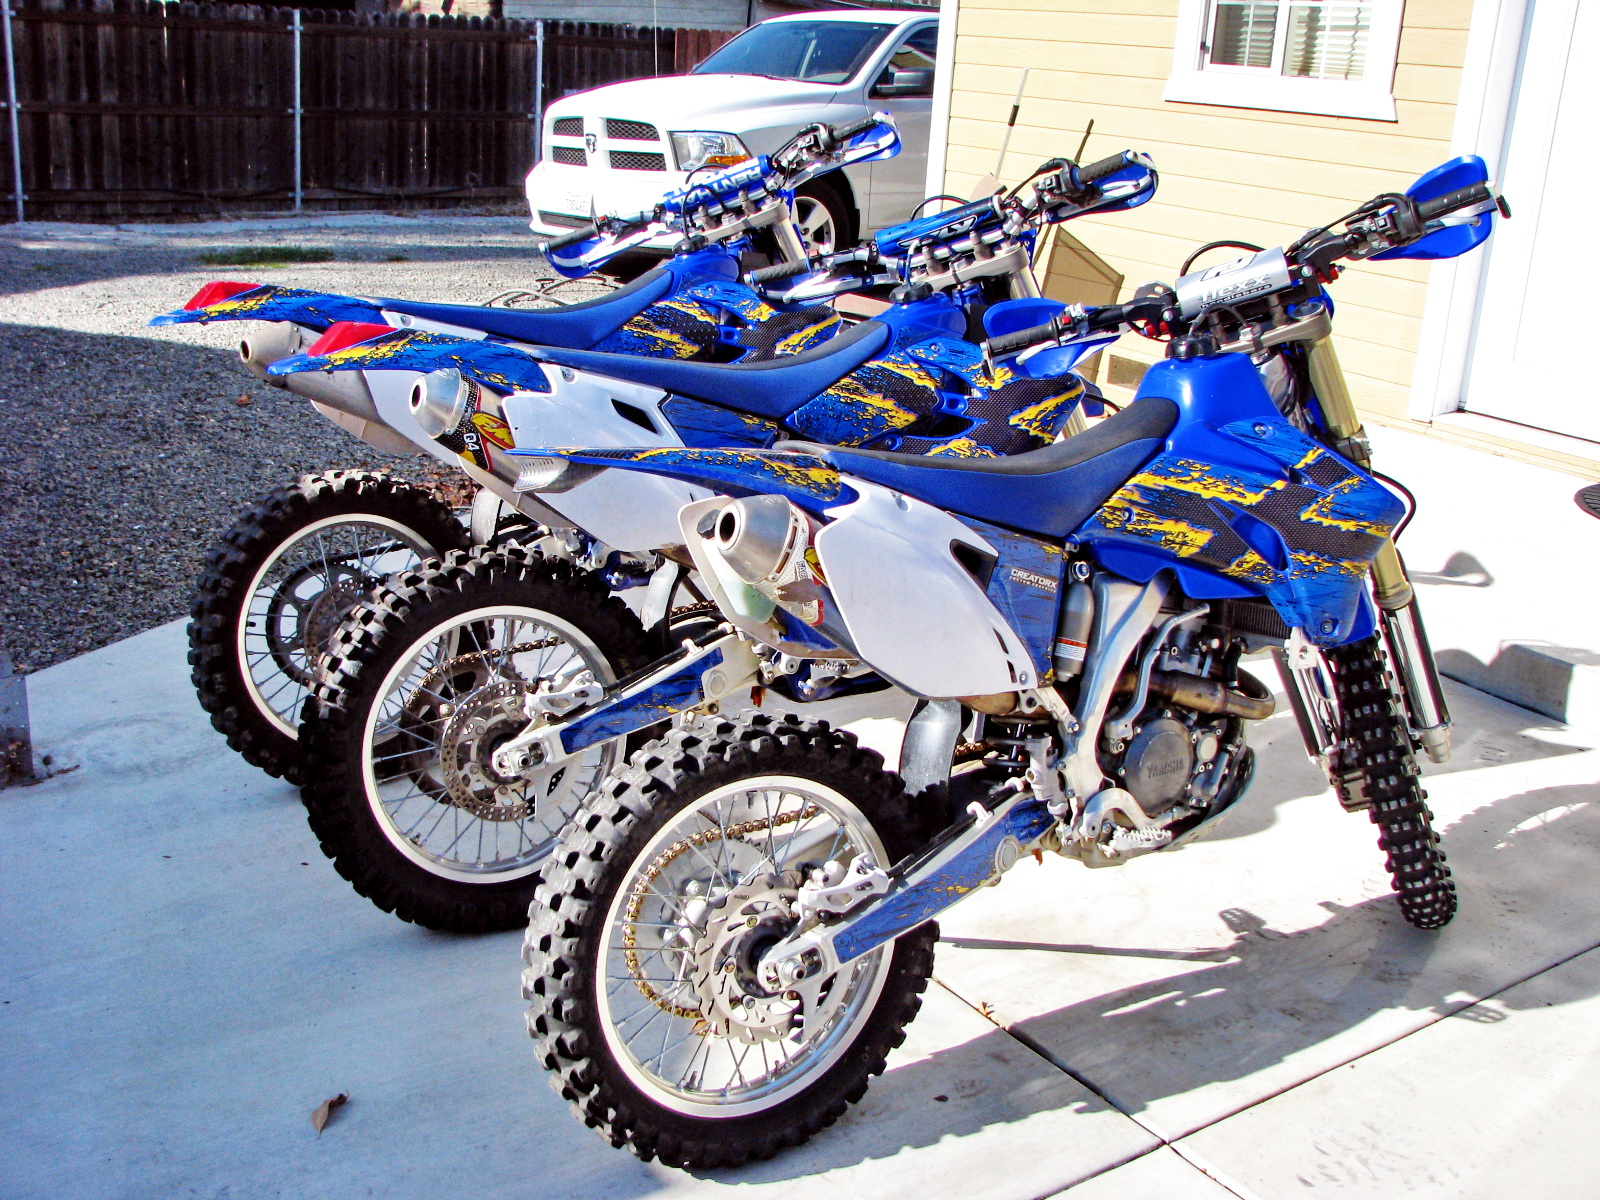 S L also Can Am Brpbombardierds together with General Back Seat Roll Cage Kit also D D F A Da Bf Bcc A Fd C also Unilli Kl. on can am 250 atv